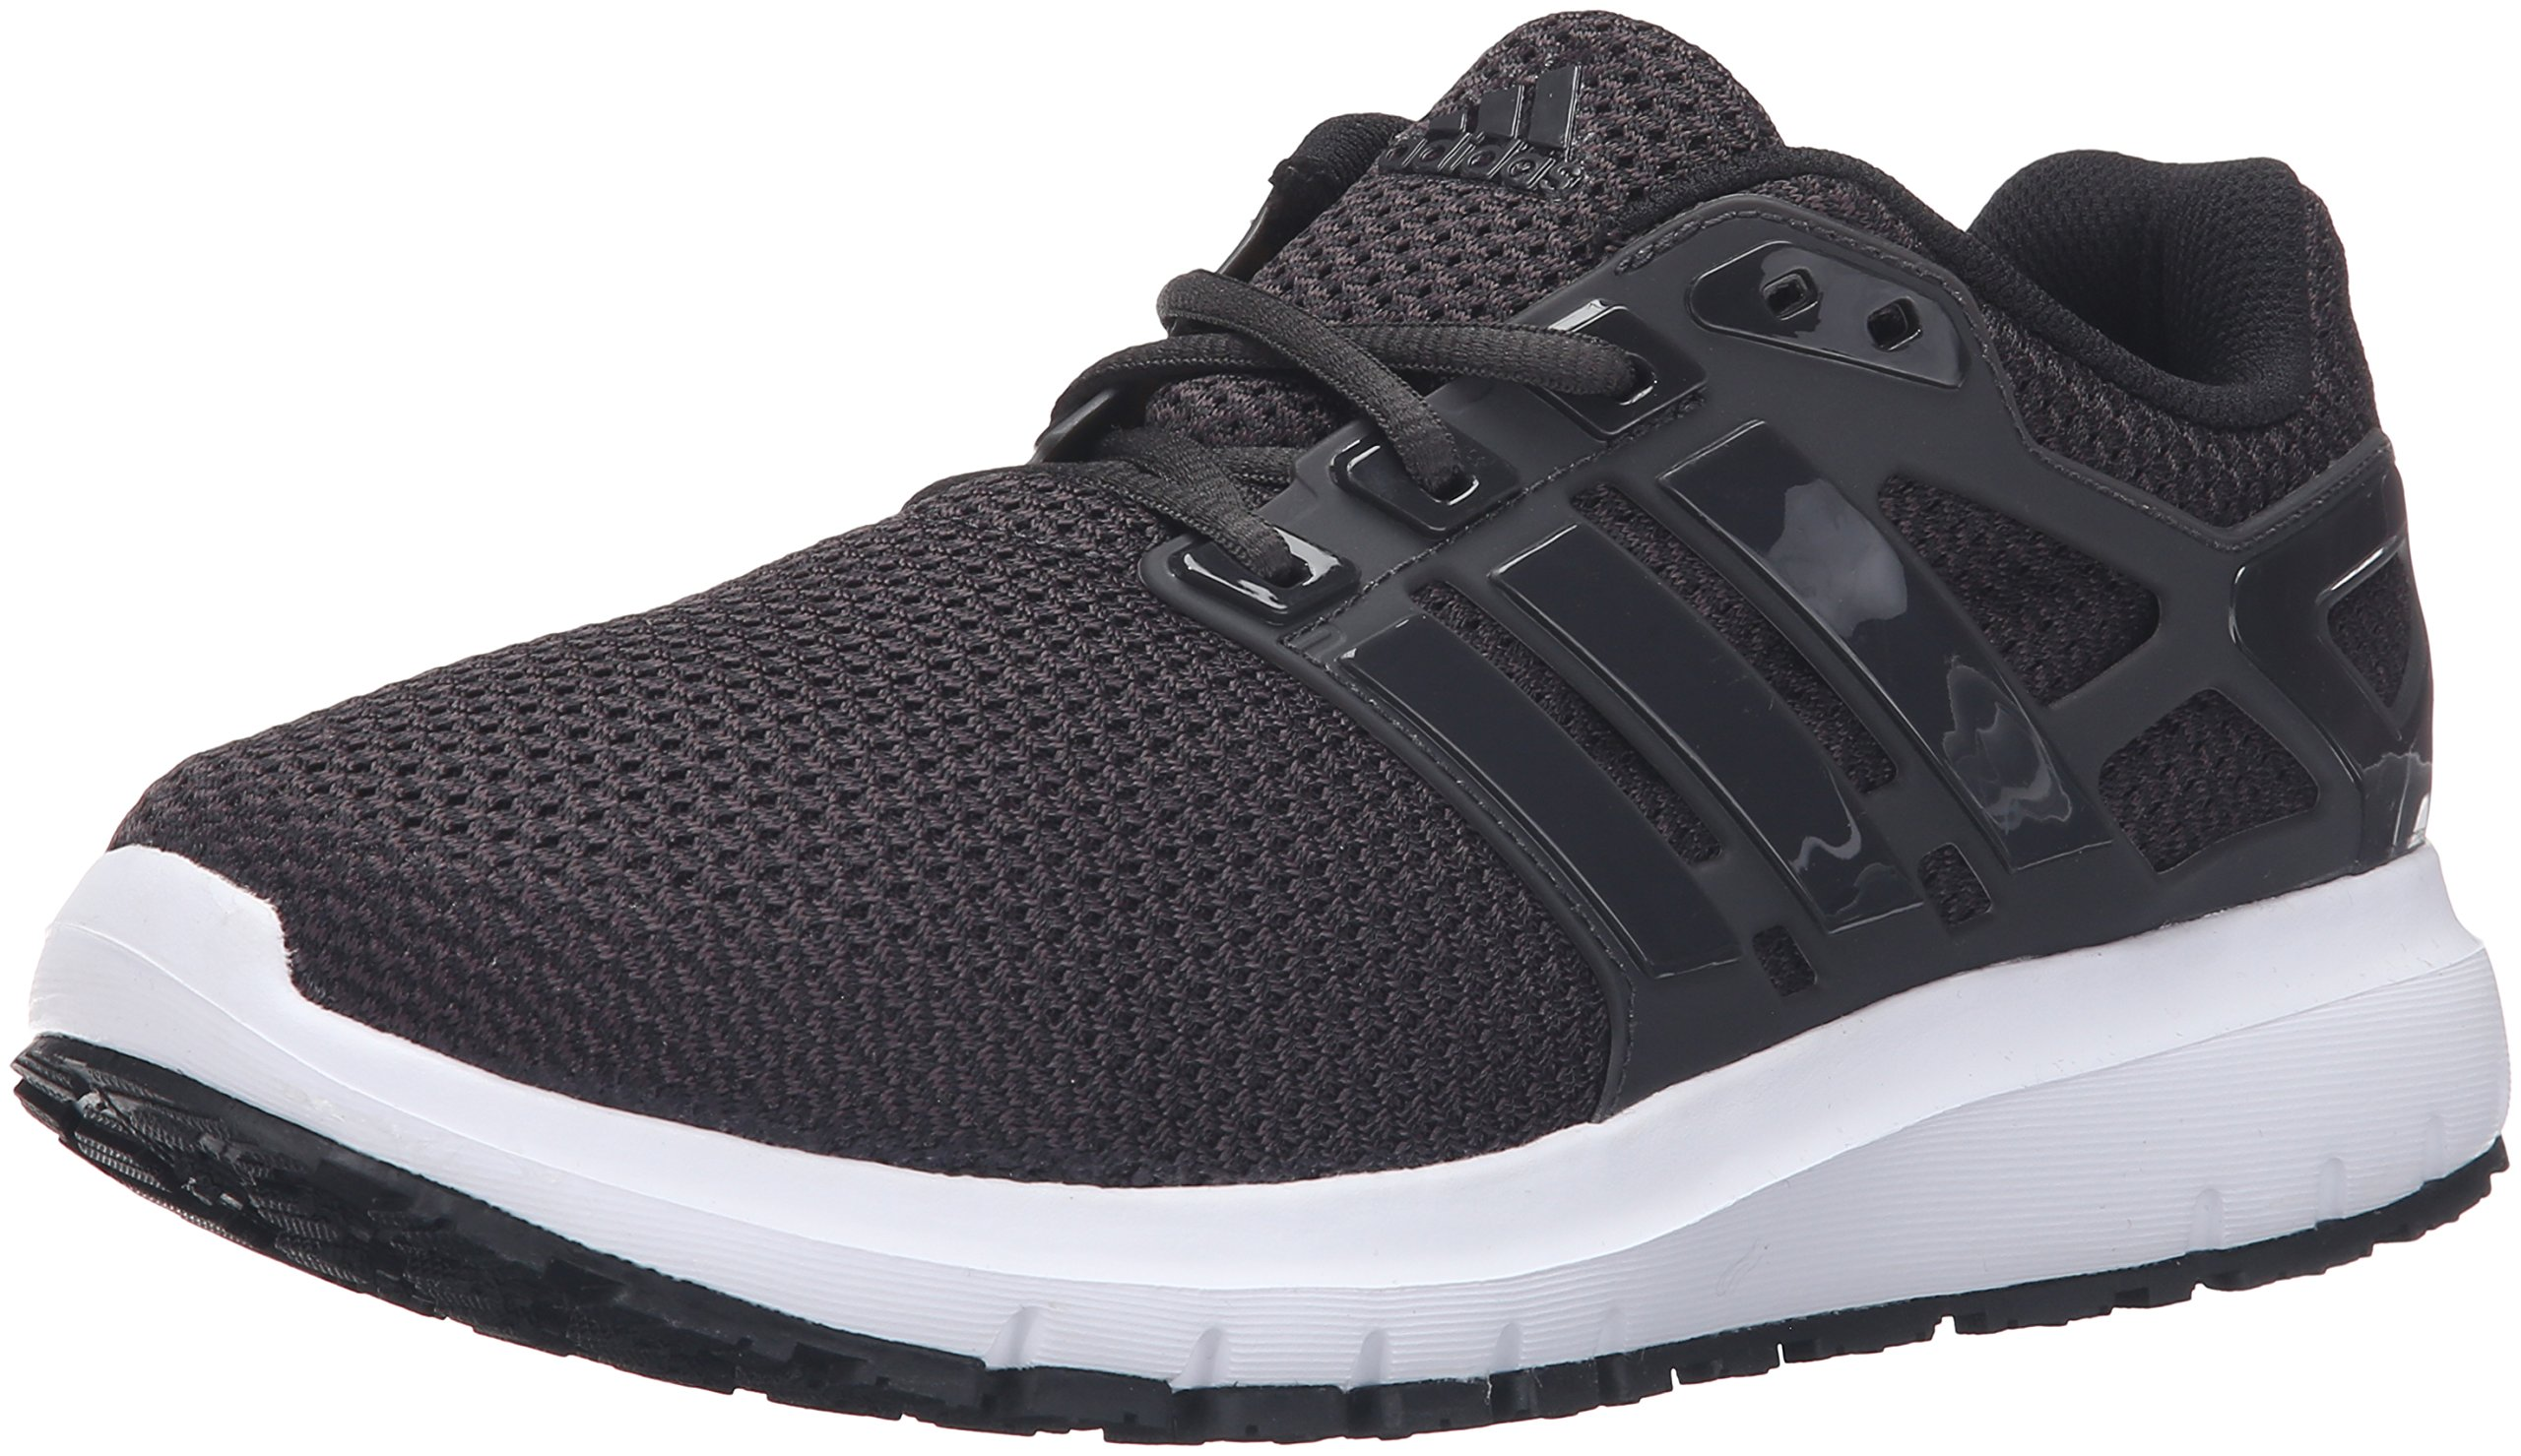 adidas Men's Energy Cloud WTC m Running Shoe, Black/Utility Black/White, 6.5 M US